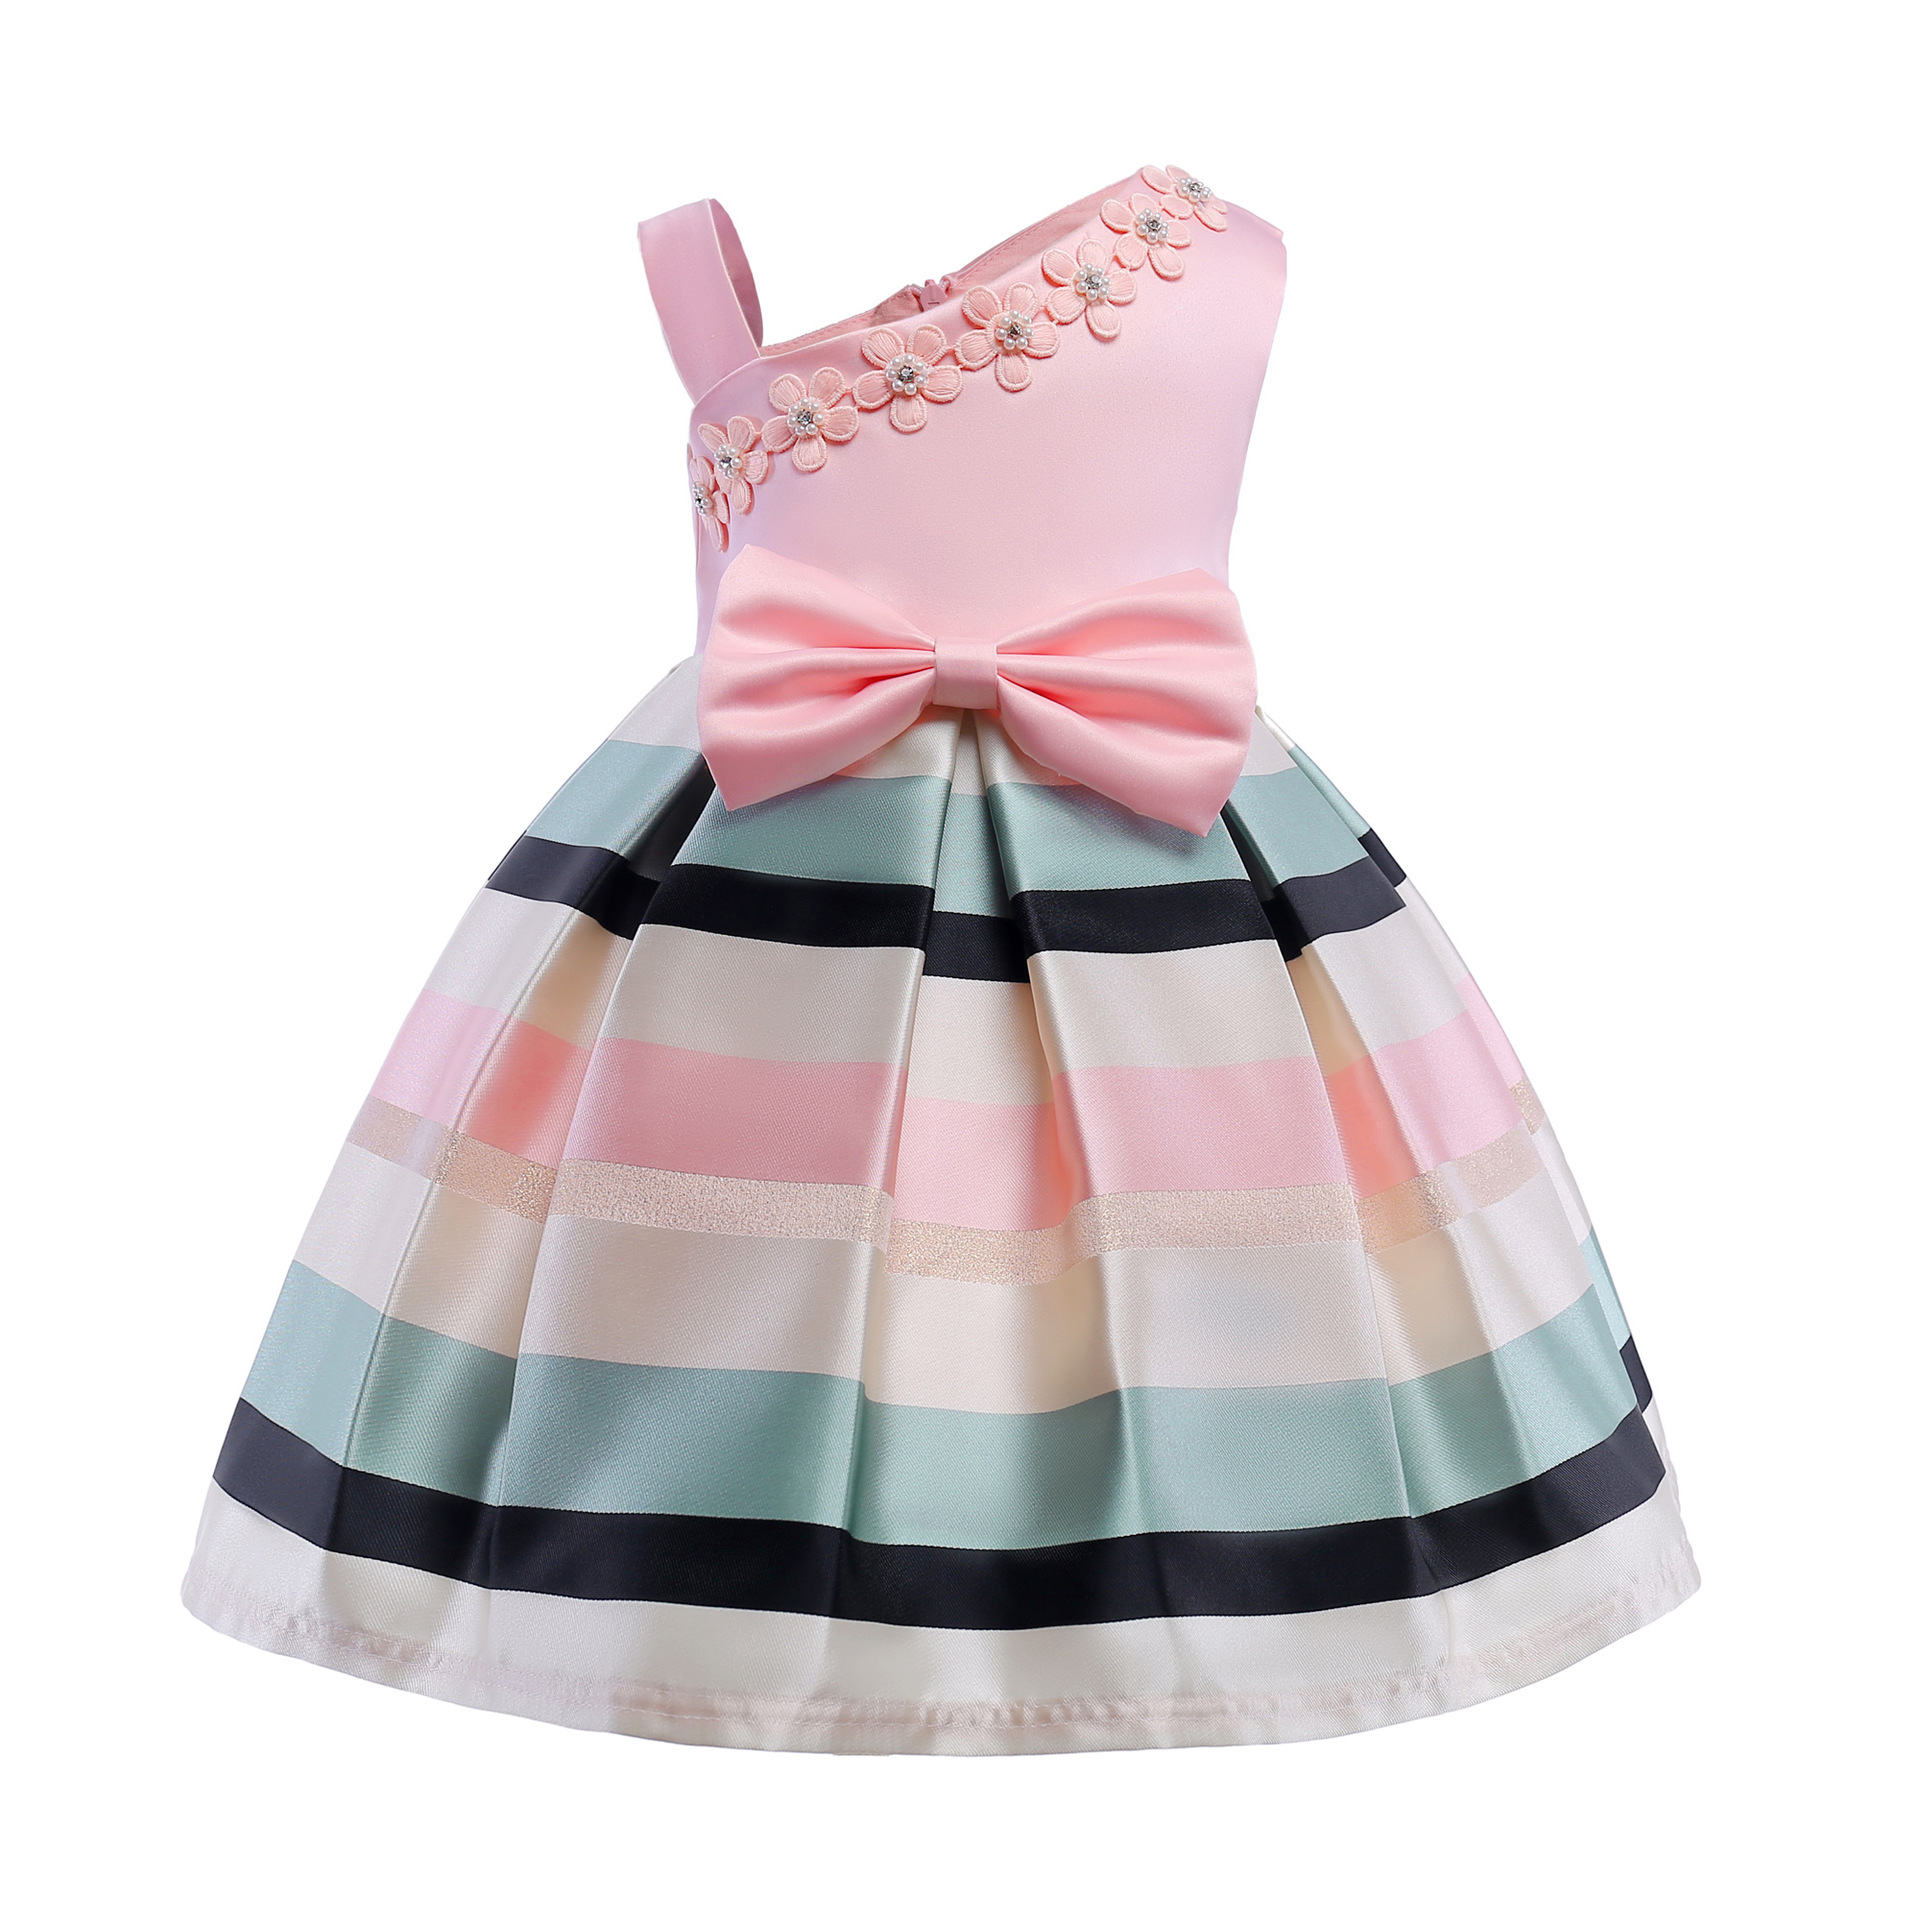 AJLONGER 2018 Spring New Style Girls Pearl Flowers Cocktail Dress Shoulder Strap Stripes Childrens Clothing